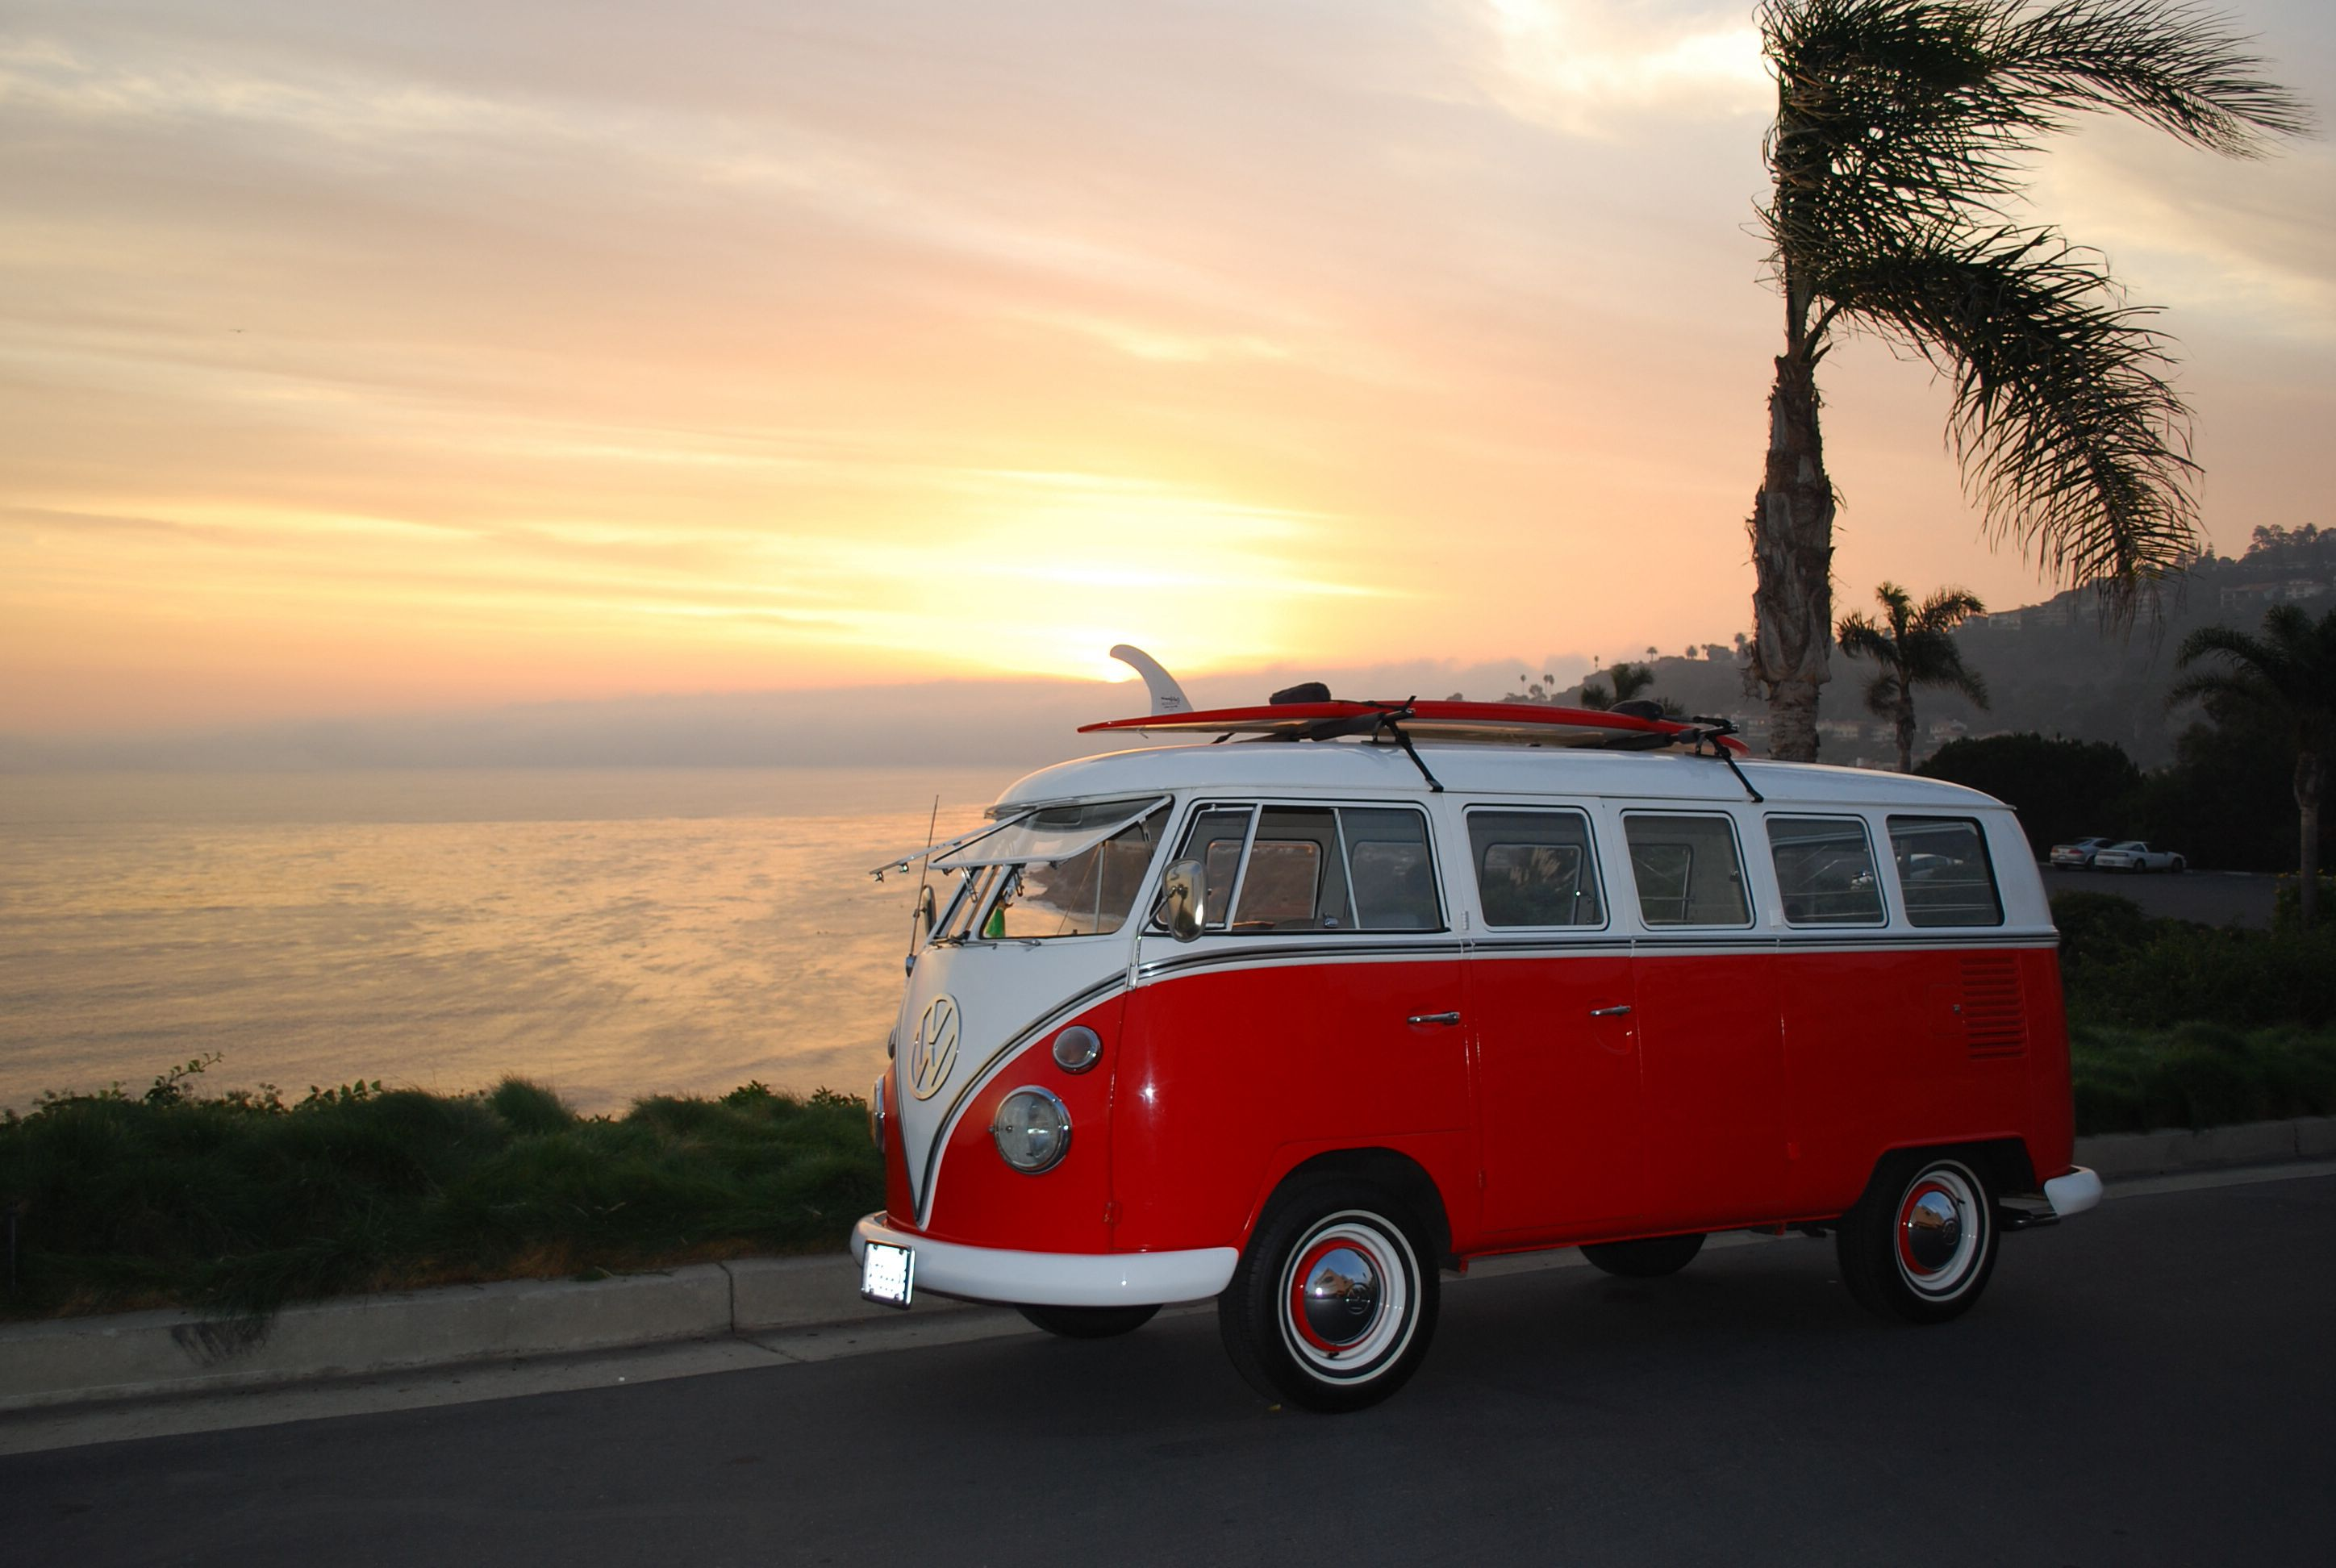 vw surf bus vw surfing pinterest cars. Black Bedroom Furniture Sets. Home Design Ideas